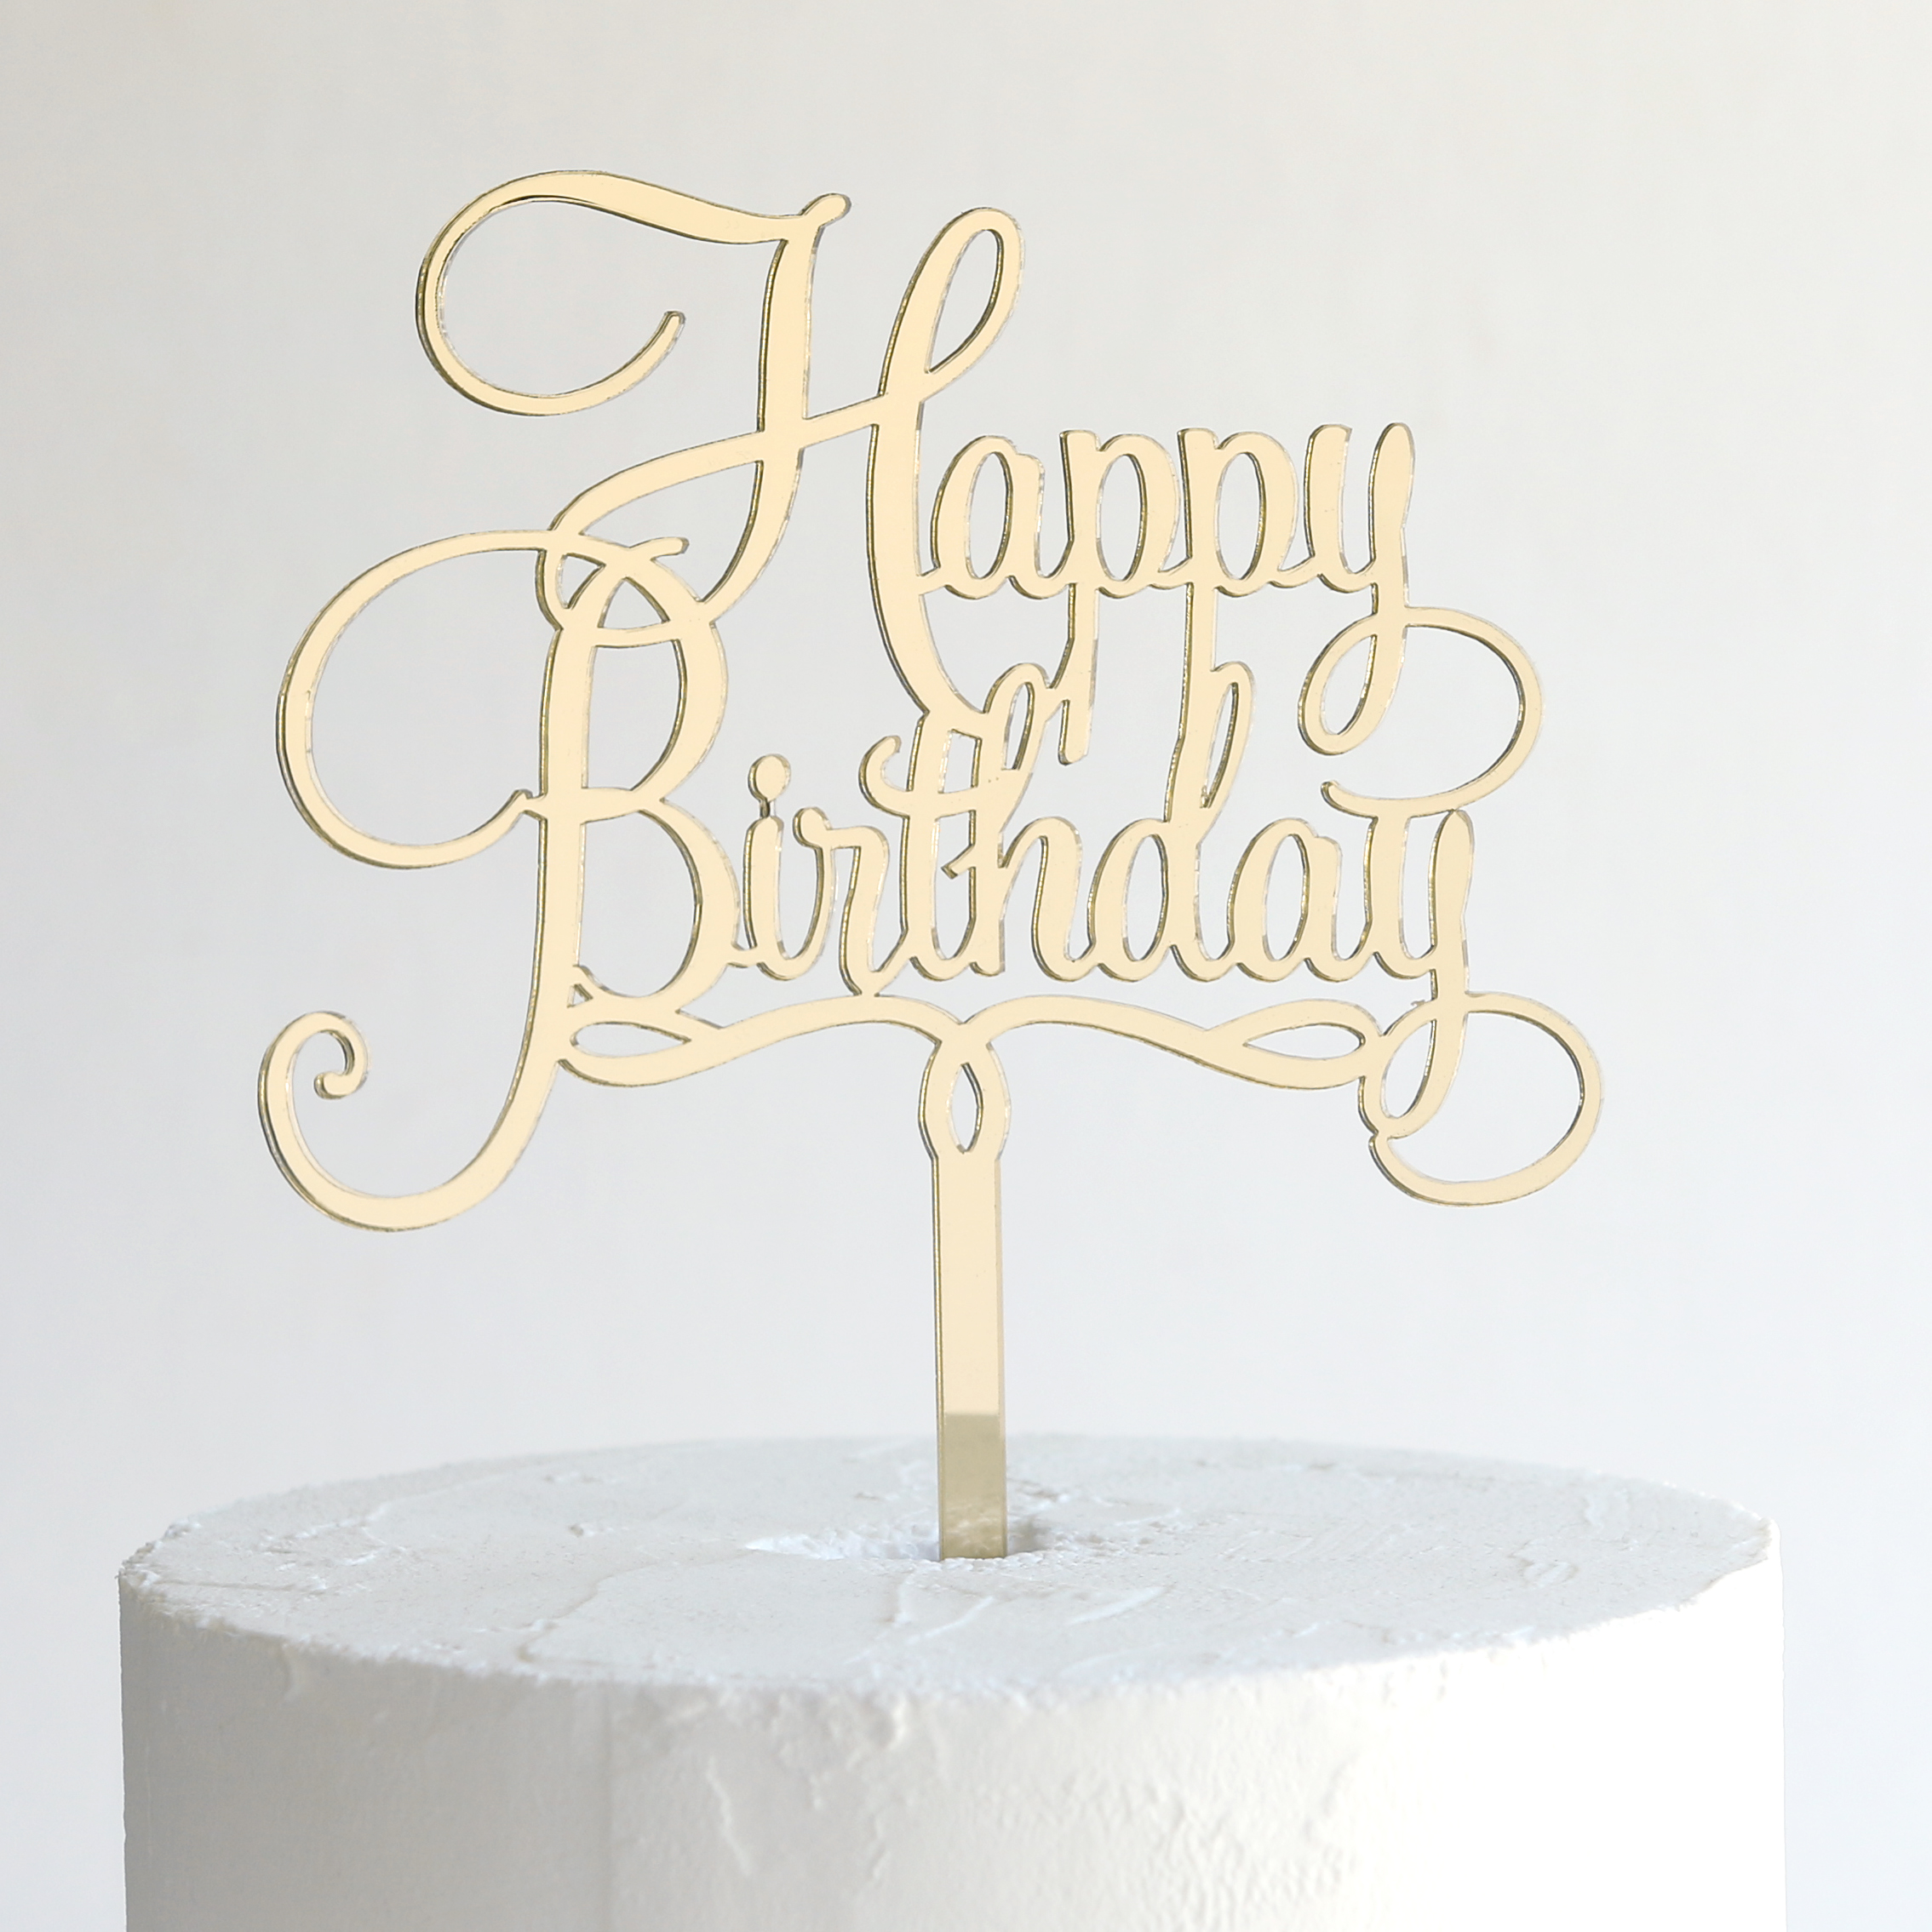 Strange Happy Birthday Cake Topper Sandra Dillon Design Funny Birthday Cards Online Alyptdamsfinfo